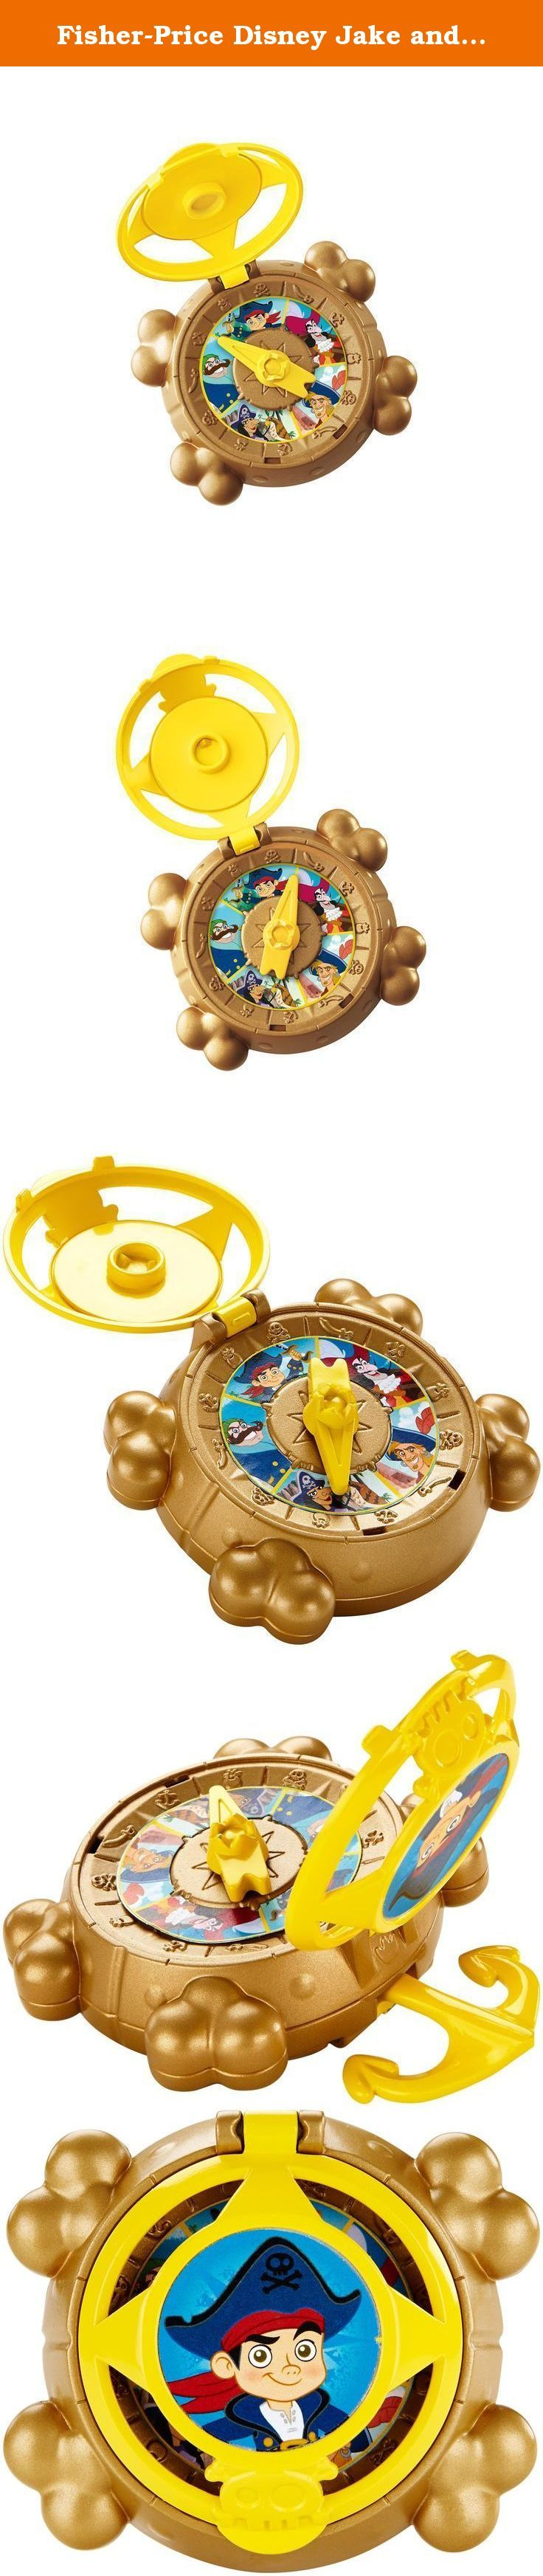 Fisher-Price Disney Jake and the Never Land Pirates Captains' Compass. Help Captain Jake locate the League of Never Sea Captains and find the Mighty Colossus! This role-play toy is inspired by Jake's Captains' Compass as seen on his TV show. Open the lid of the compass to see all 5 captains from Captain Jake and the Never Land Pirates' TV show: Captain Lebeak, Captain Hook, Captain Flynn, Captain Frost and Captain Jake! Activate the compass by spinning the needle. Wherever it lands you'll...